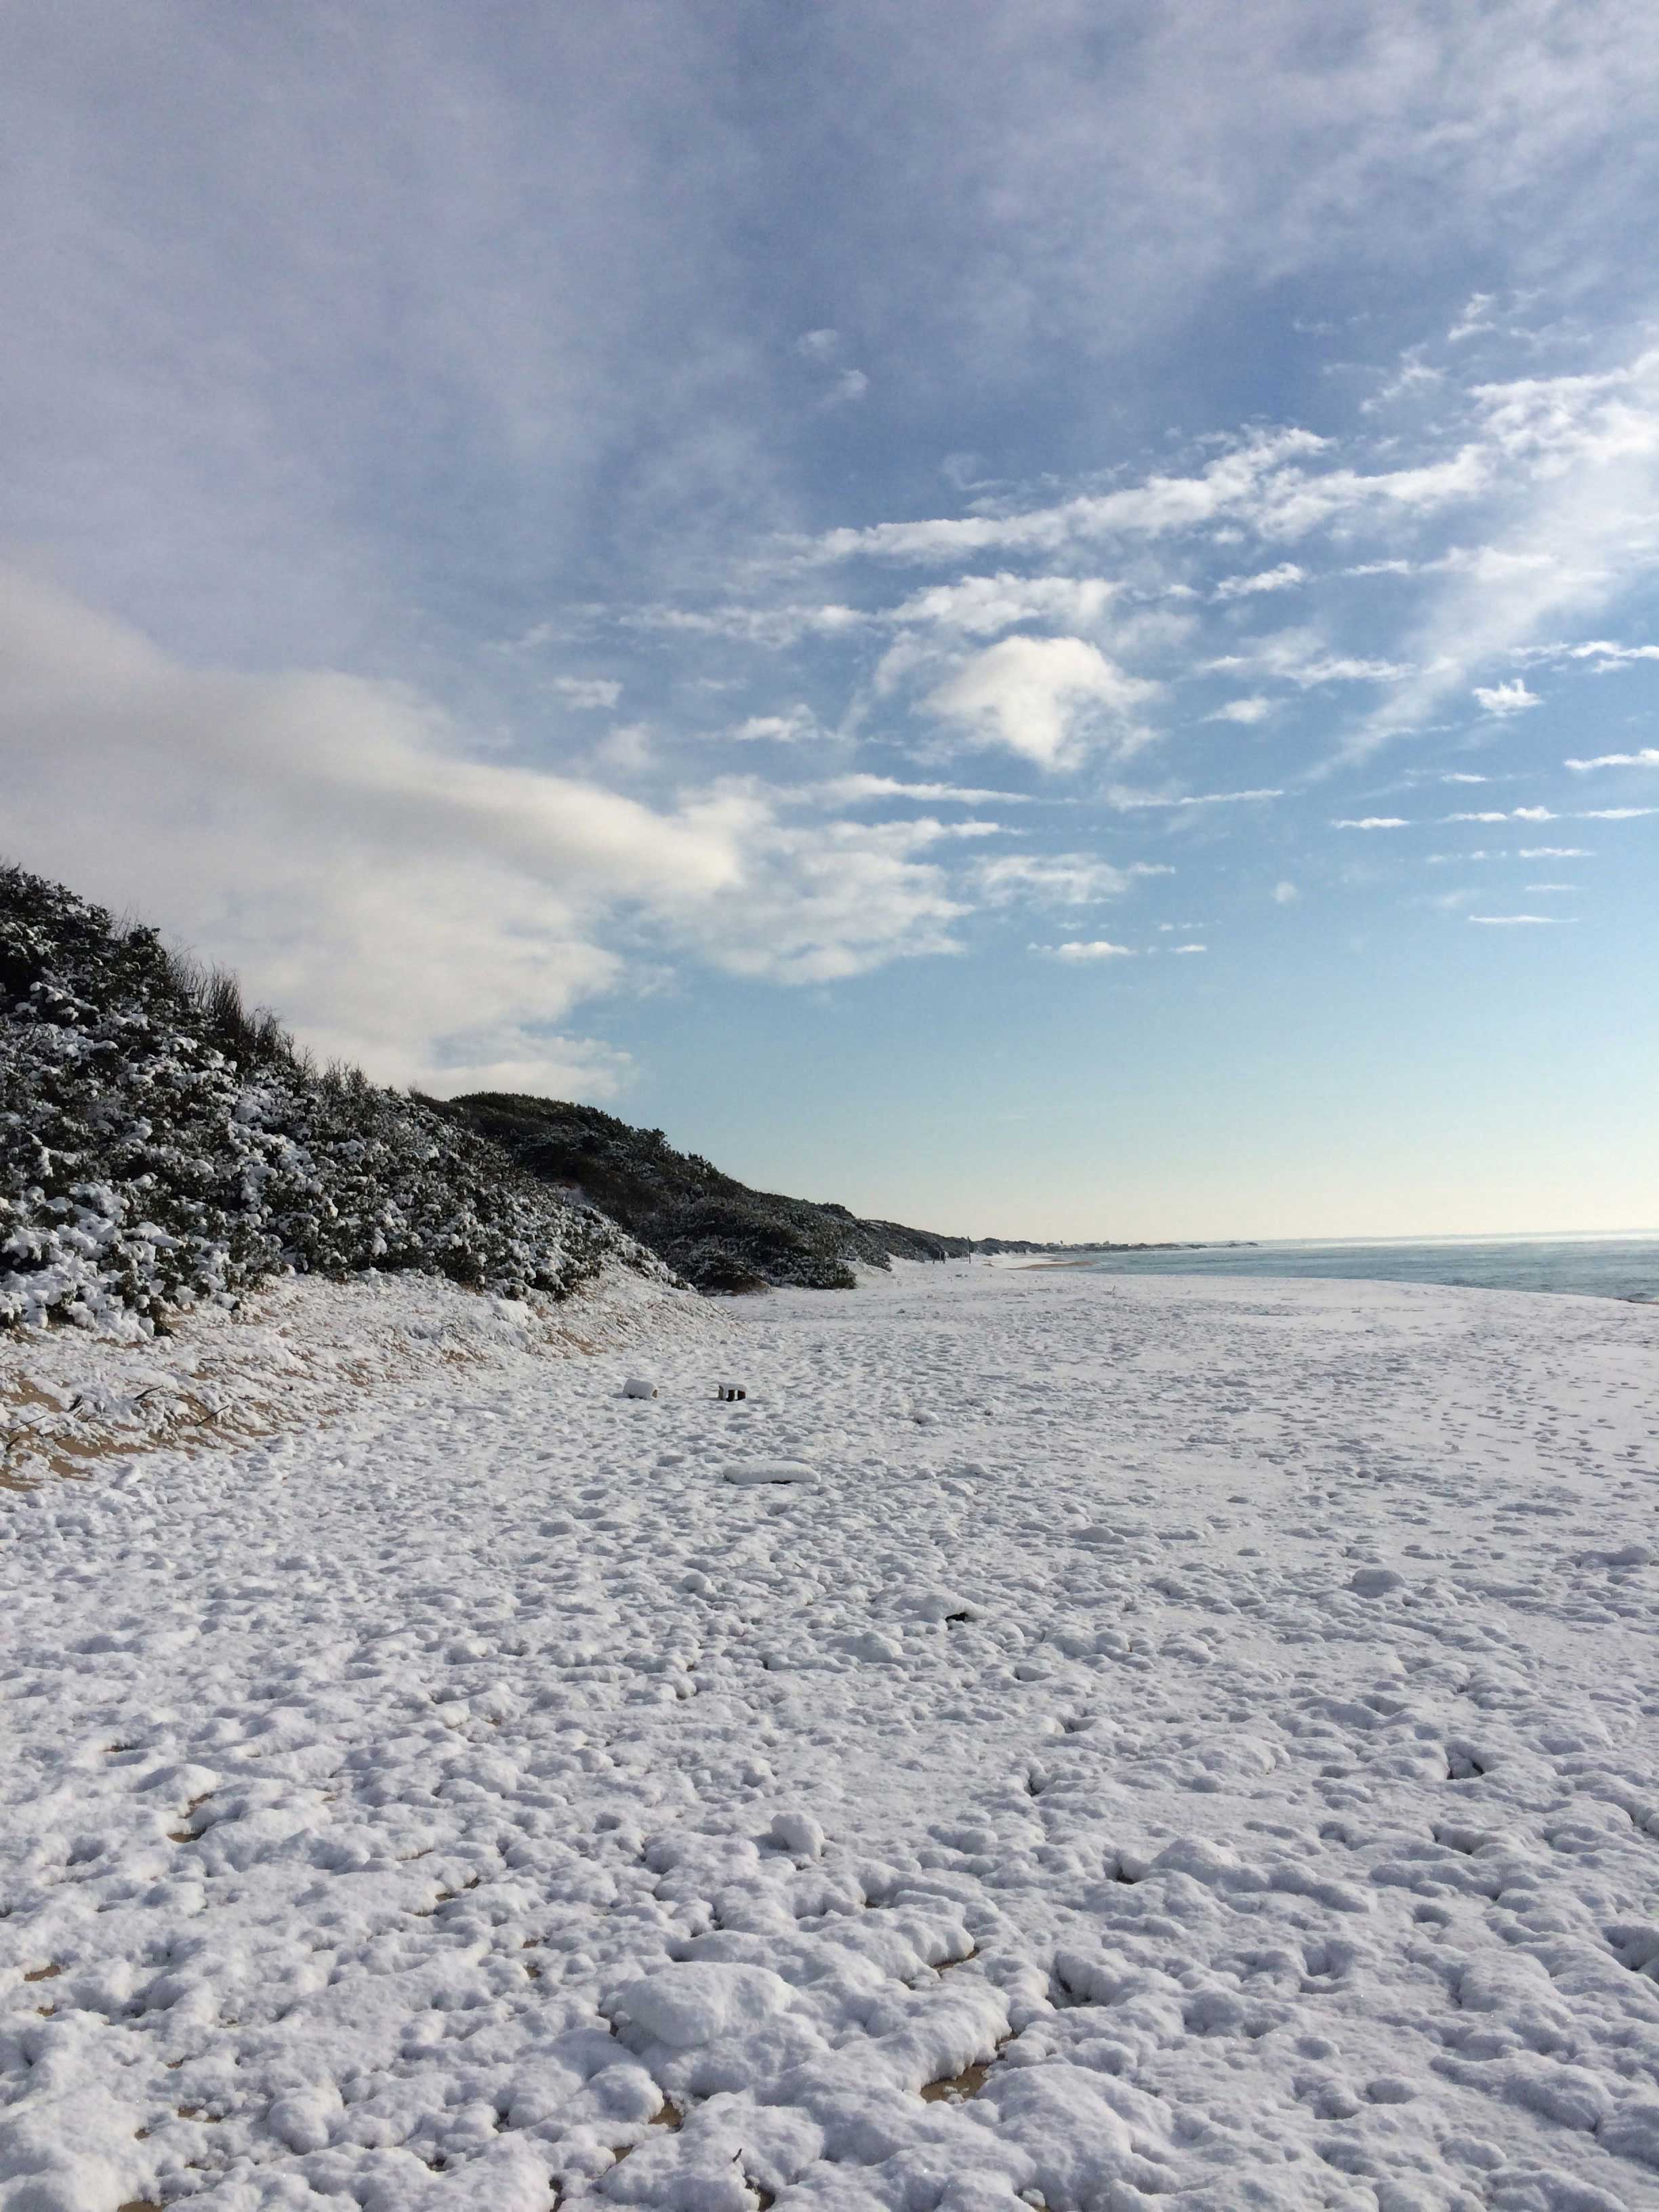 Snow covered beach